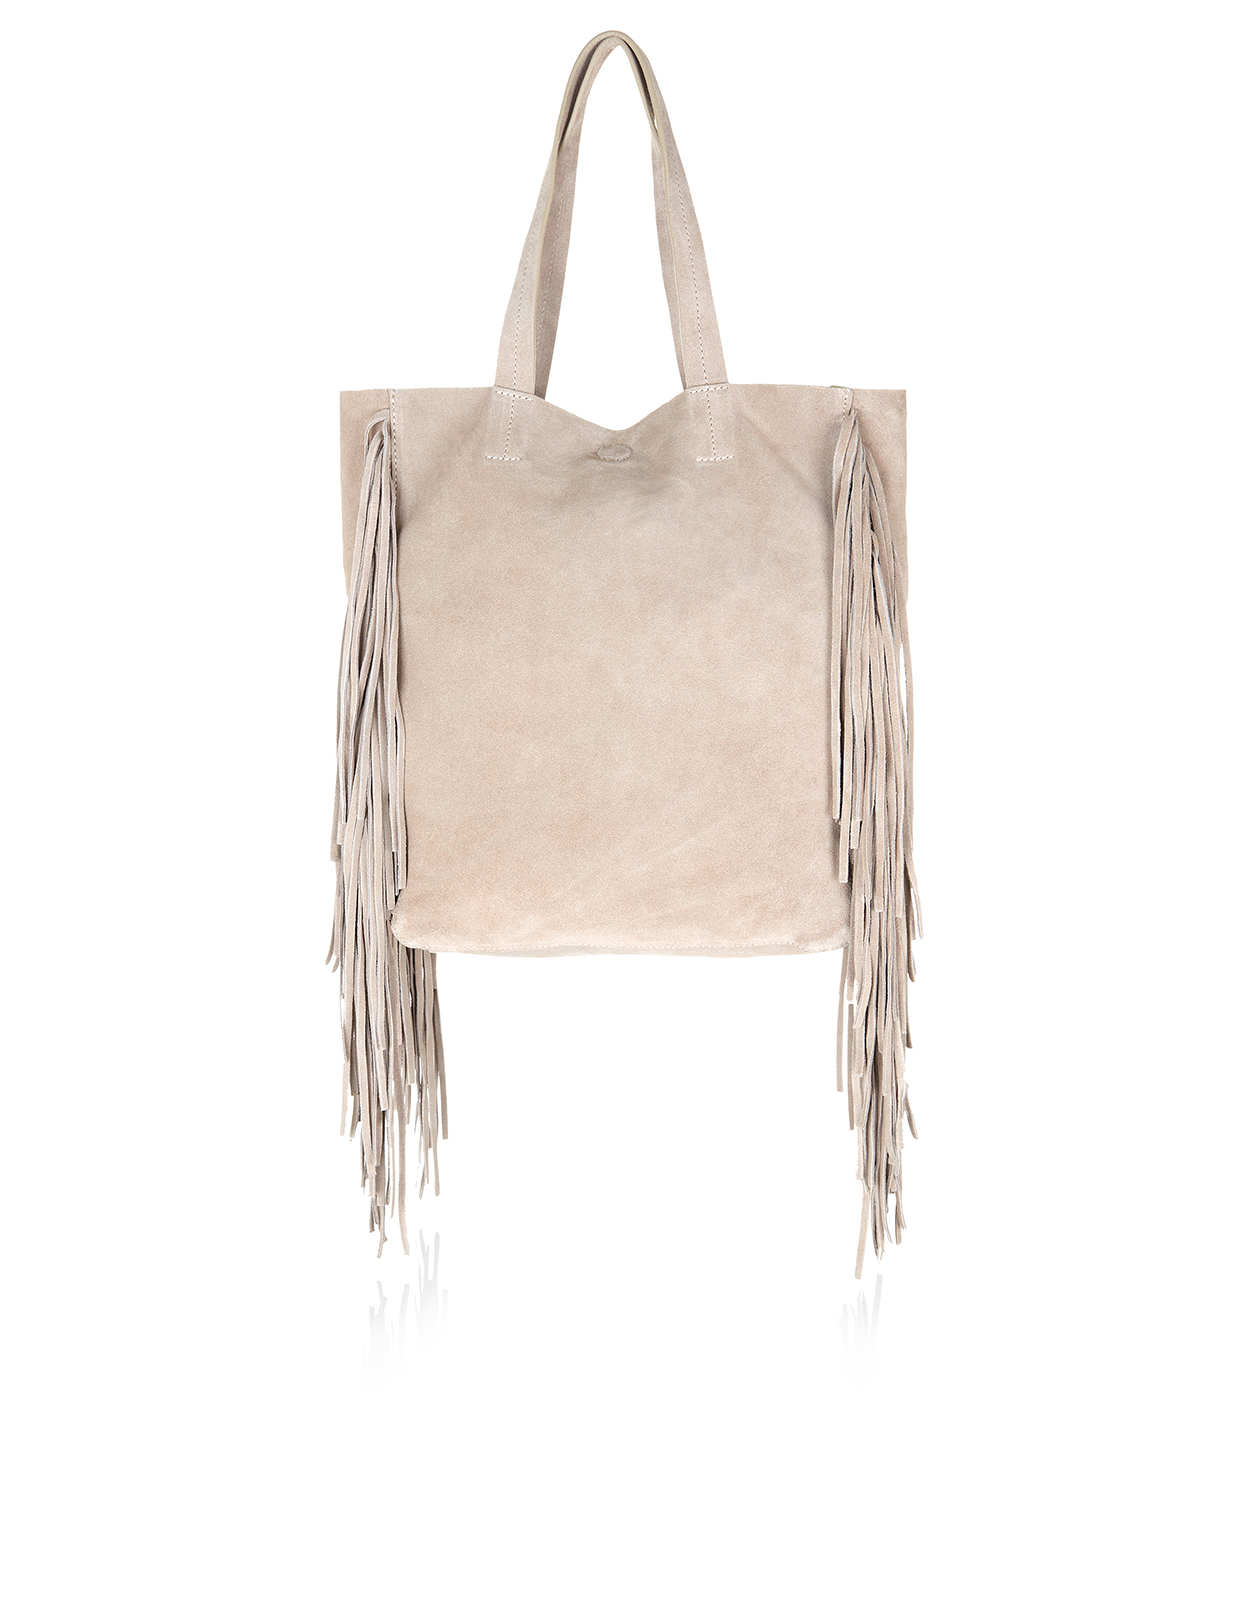 Accessorize, Leather Fringed Tote Bag £55